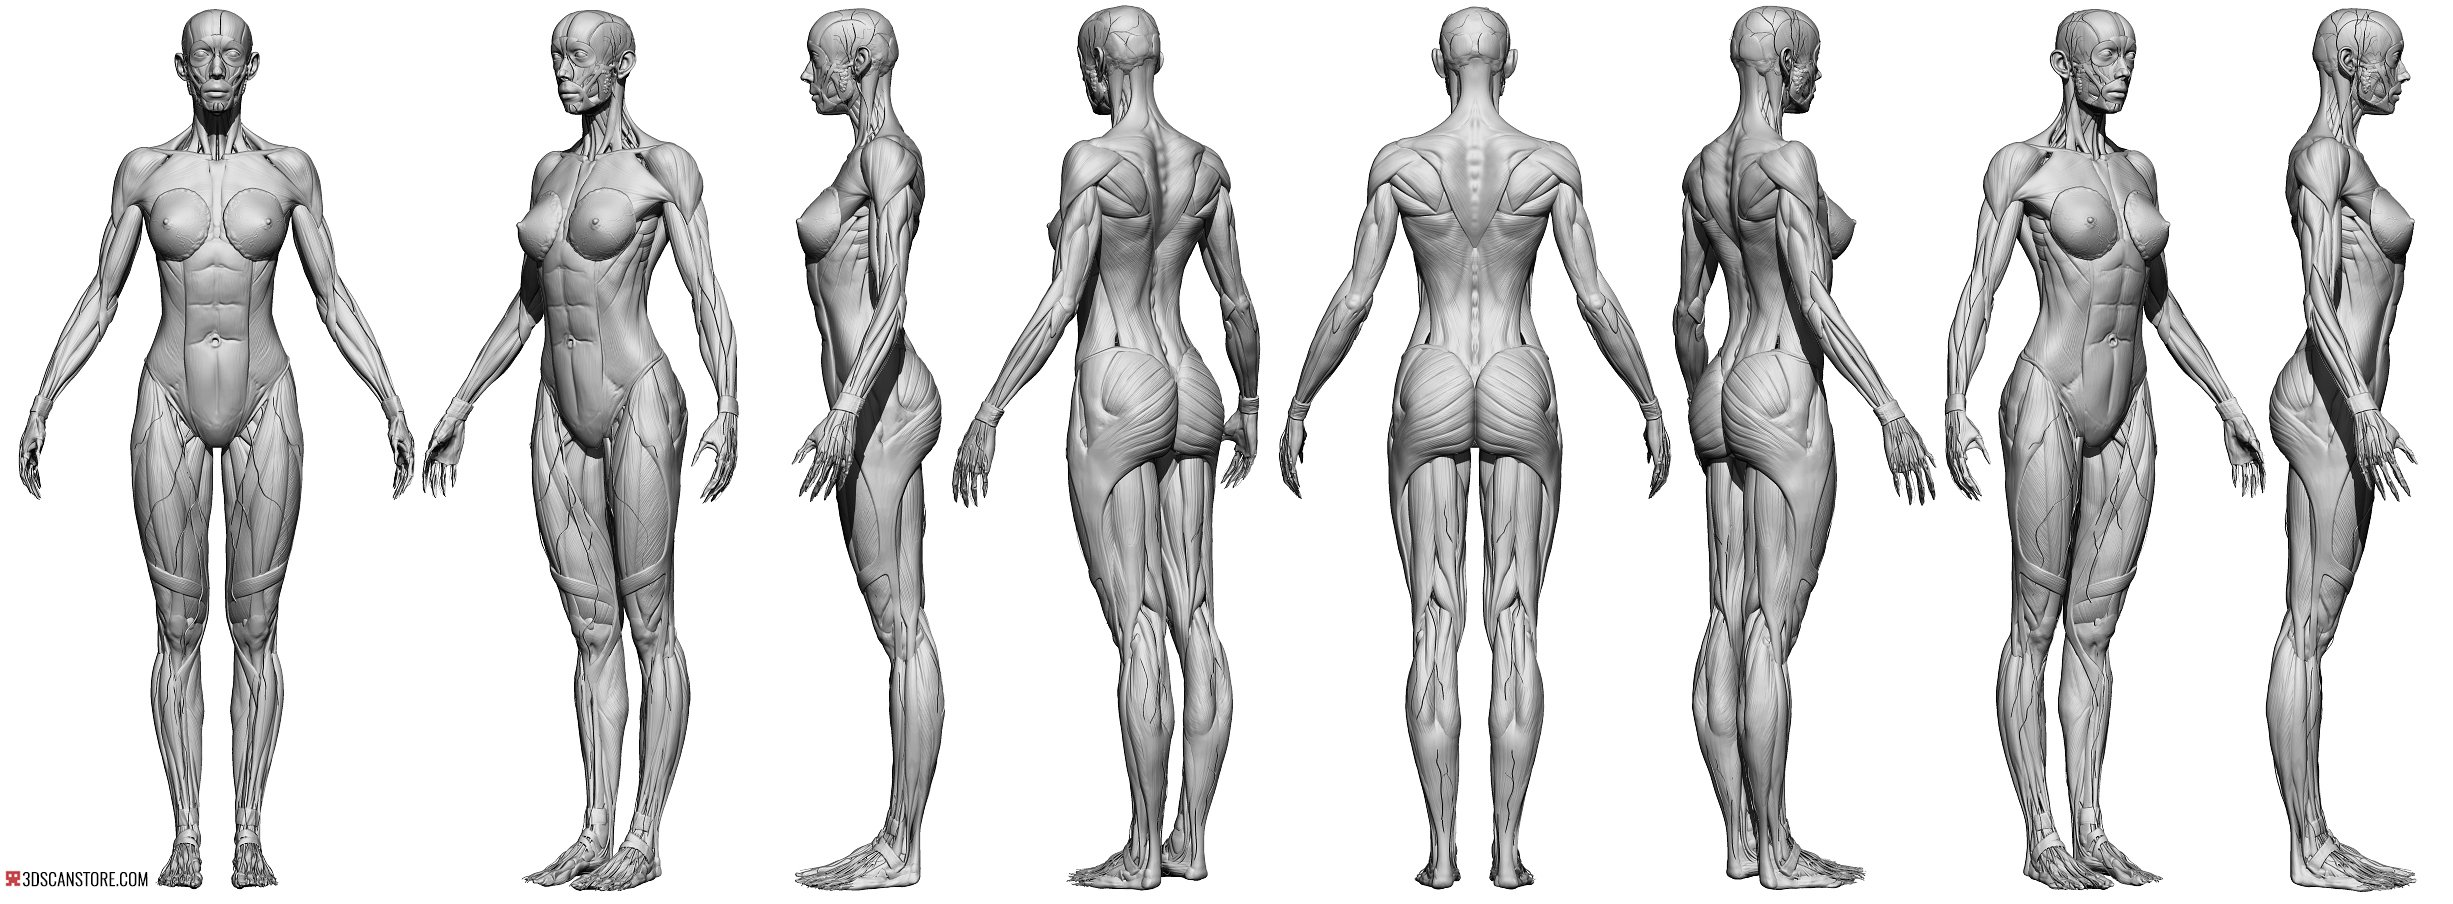 Female Écorché Reference Images